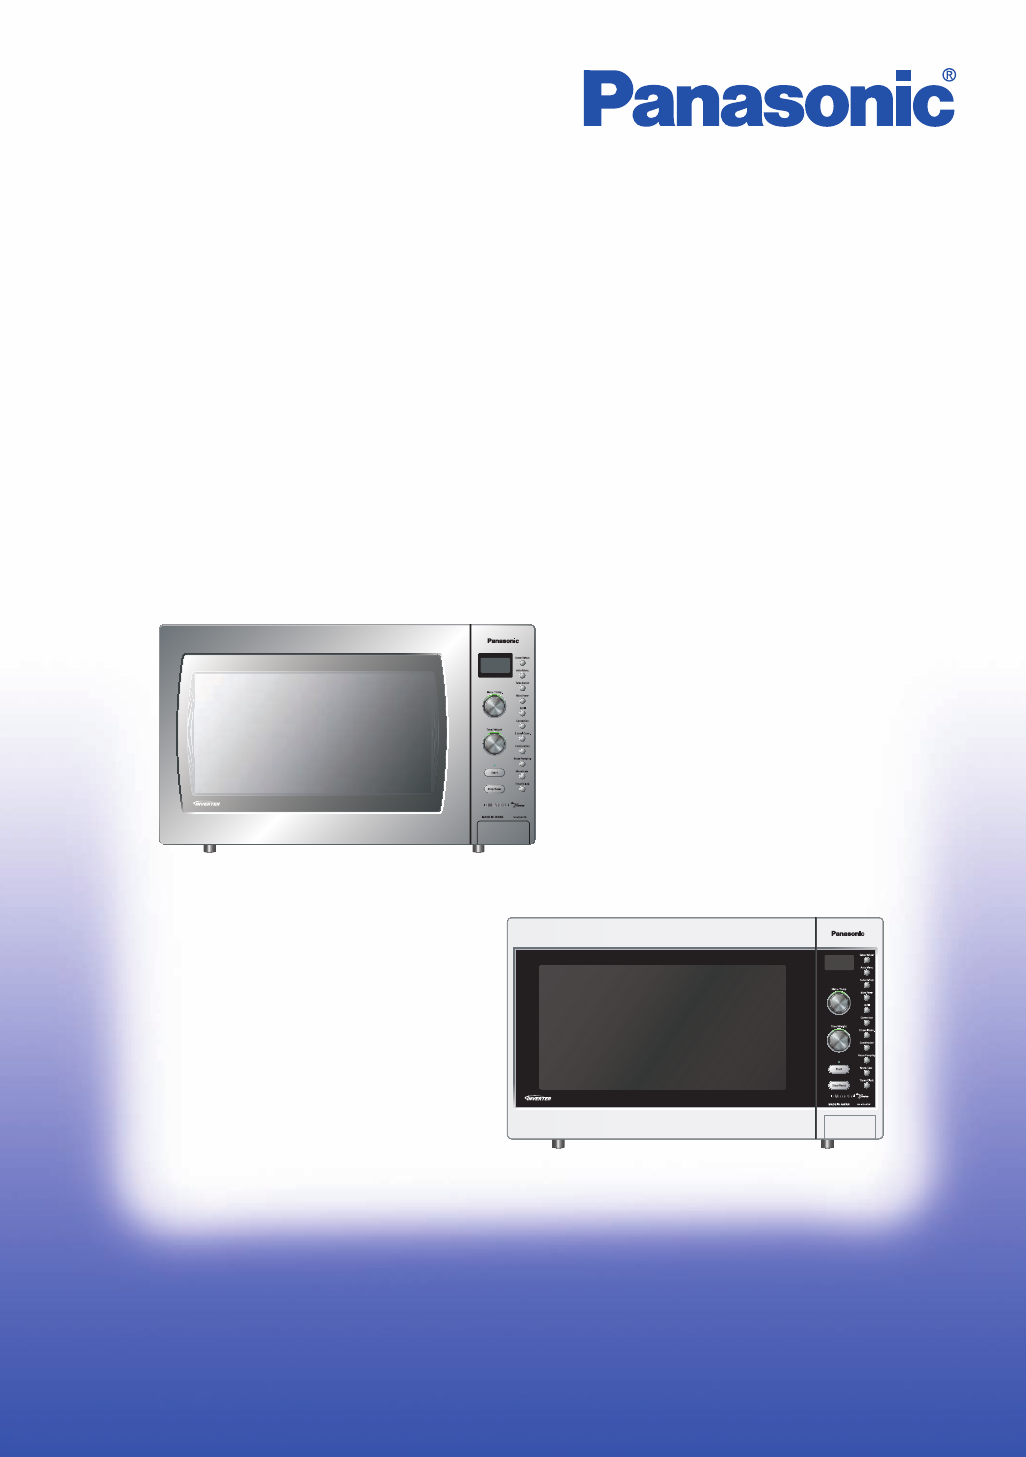 panasonic convection oven nn cd997s user guide manualsonline com rh camera manualsonline com Microwave Panasonic NN sn960s Manual Microwave Panasonic NN sn960s Manual